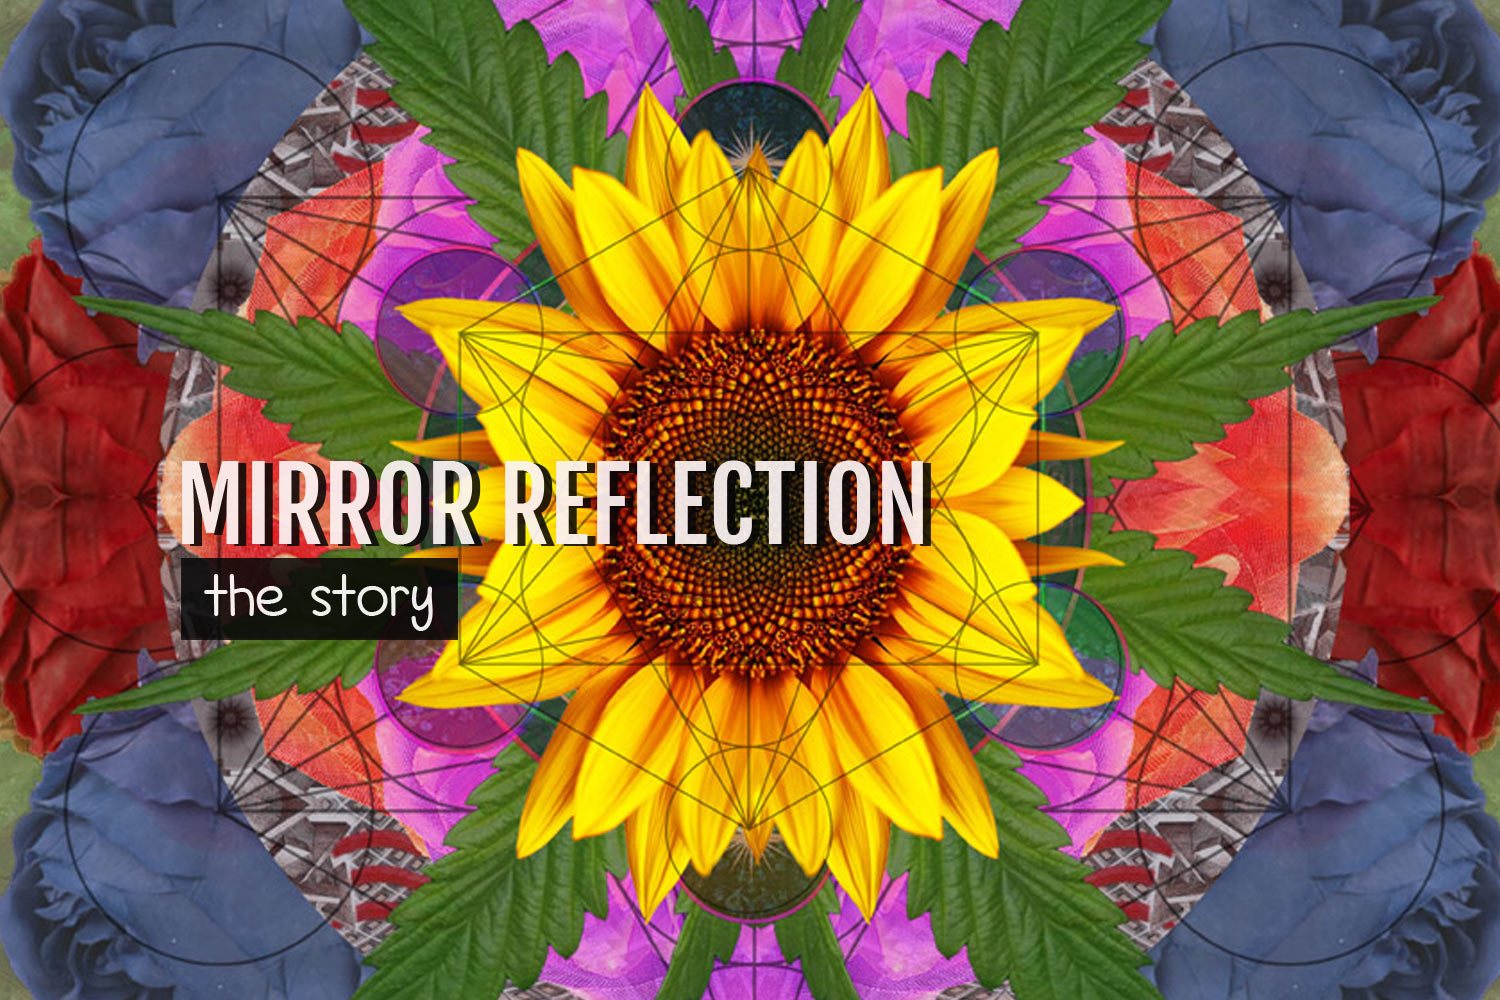 DIGITAL ART AMSTERDAM - Art Story MIRROR REFLECTION